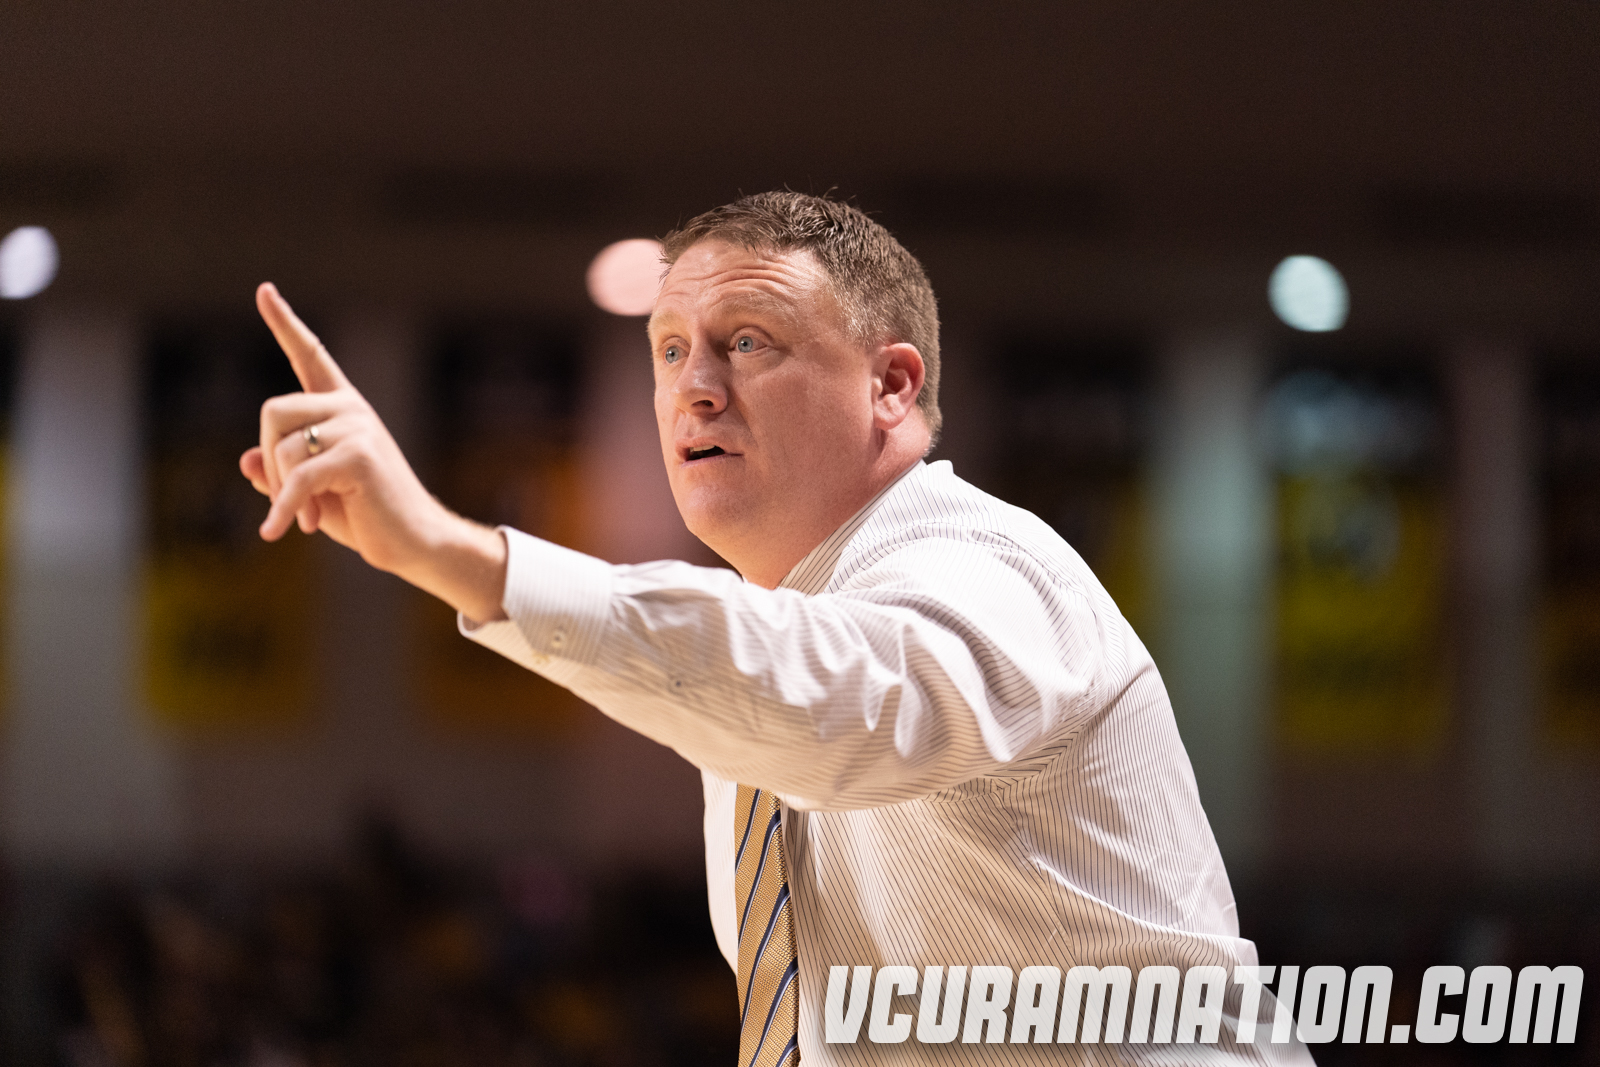 VCU & Coach Rhoades agree to 2 year extension